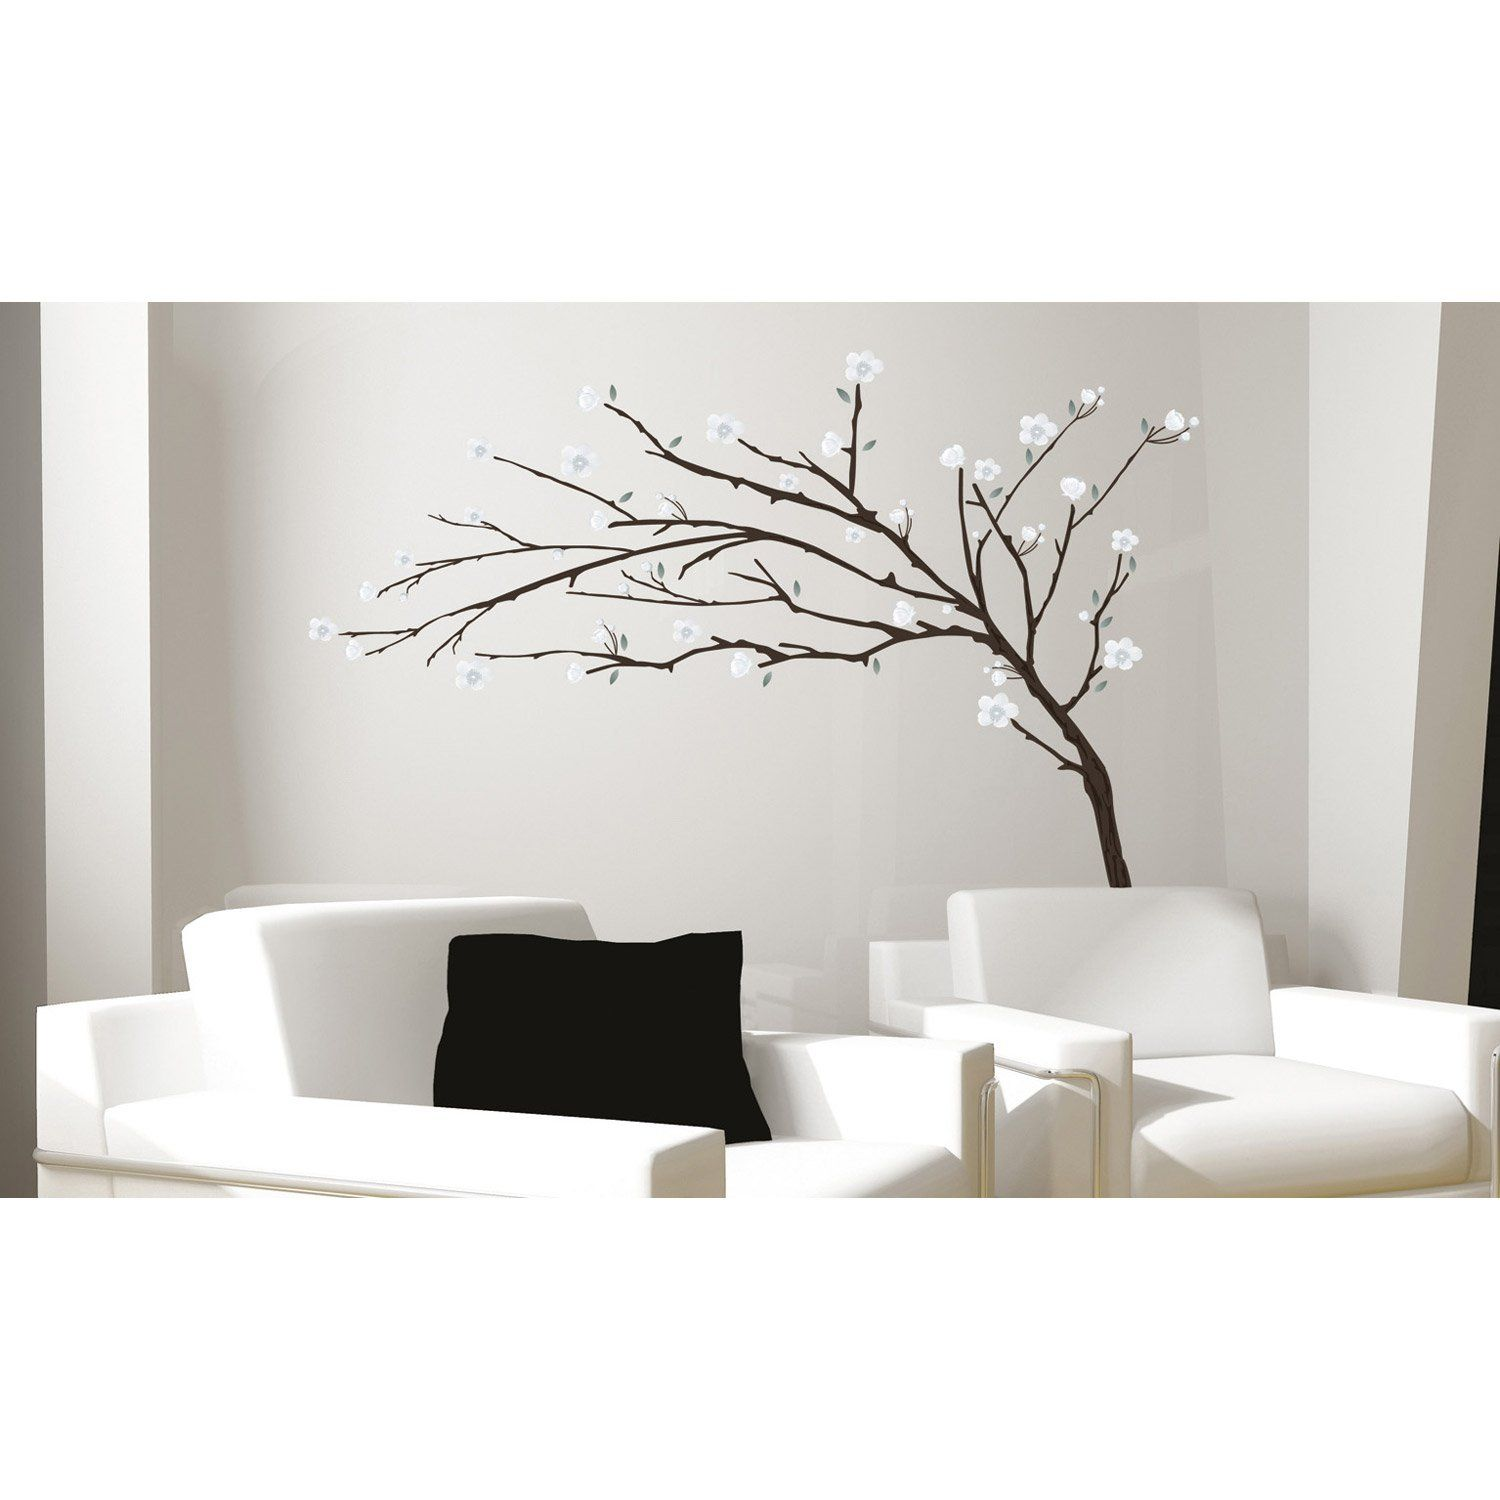 Sticker Branche Design 50 Cm X 70 Cm Art De Mur D Arbre Stickers Muraux Design